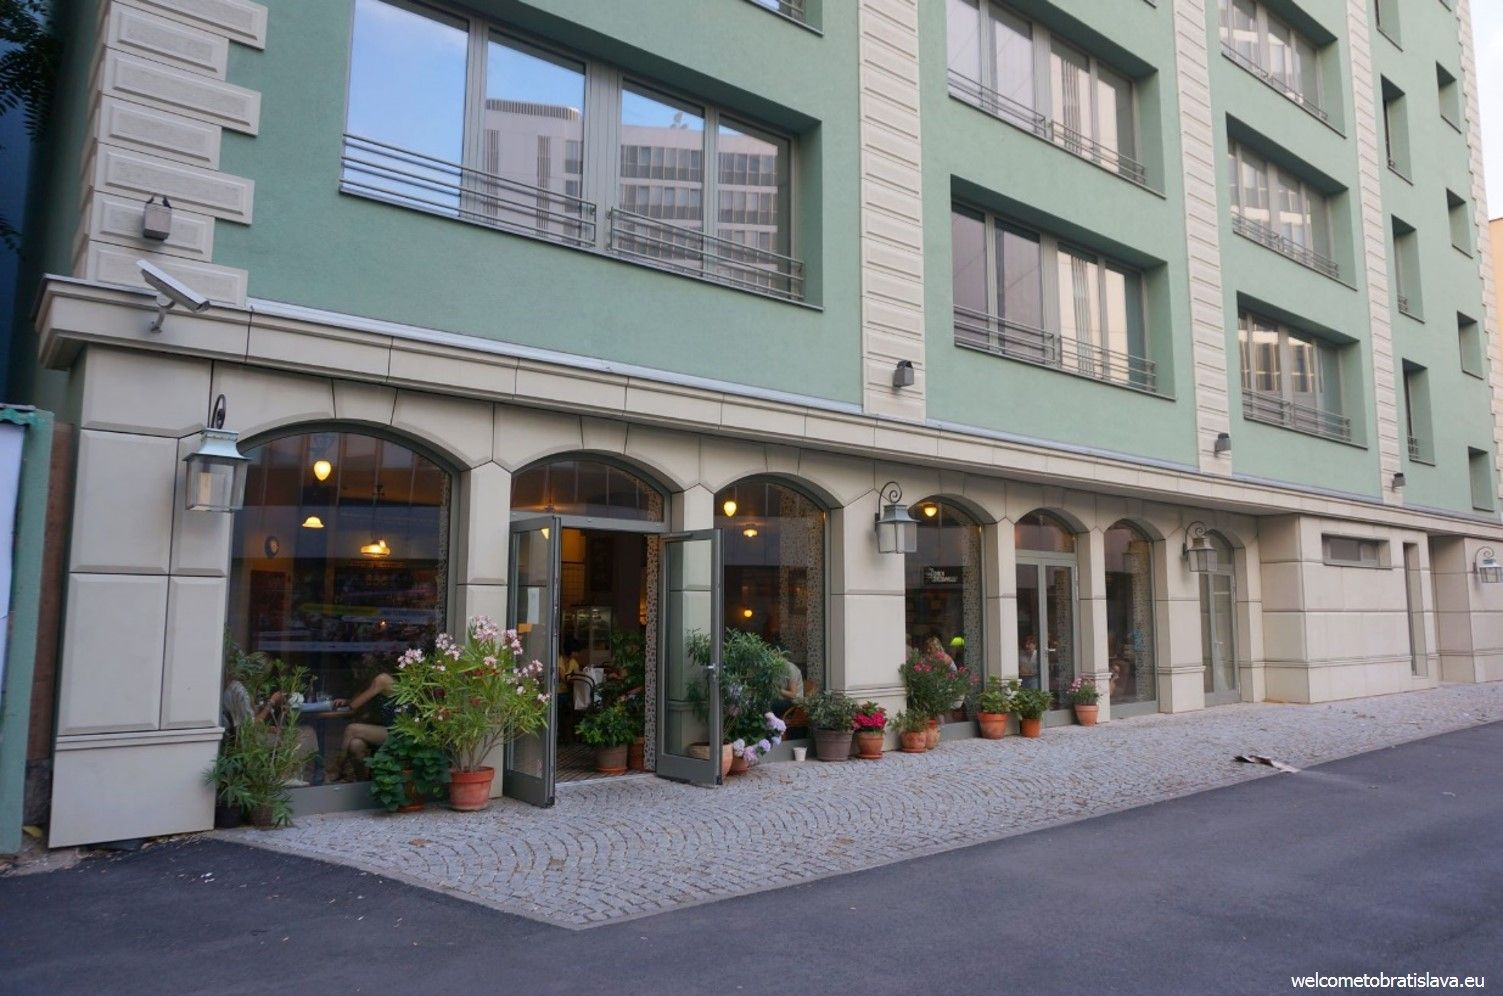 St. Germain is located in a wider center but still walking distance from the Old Town